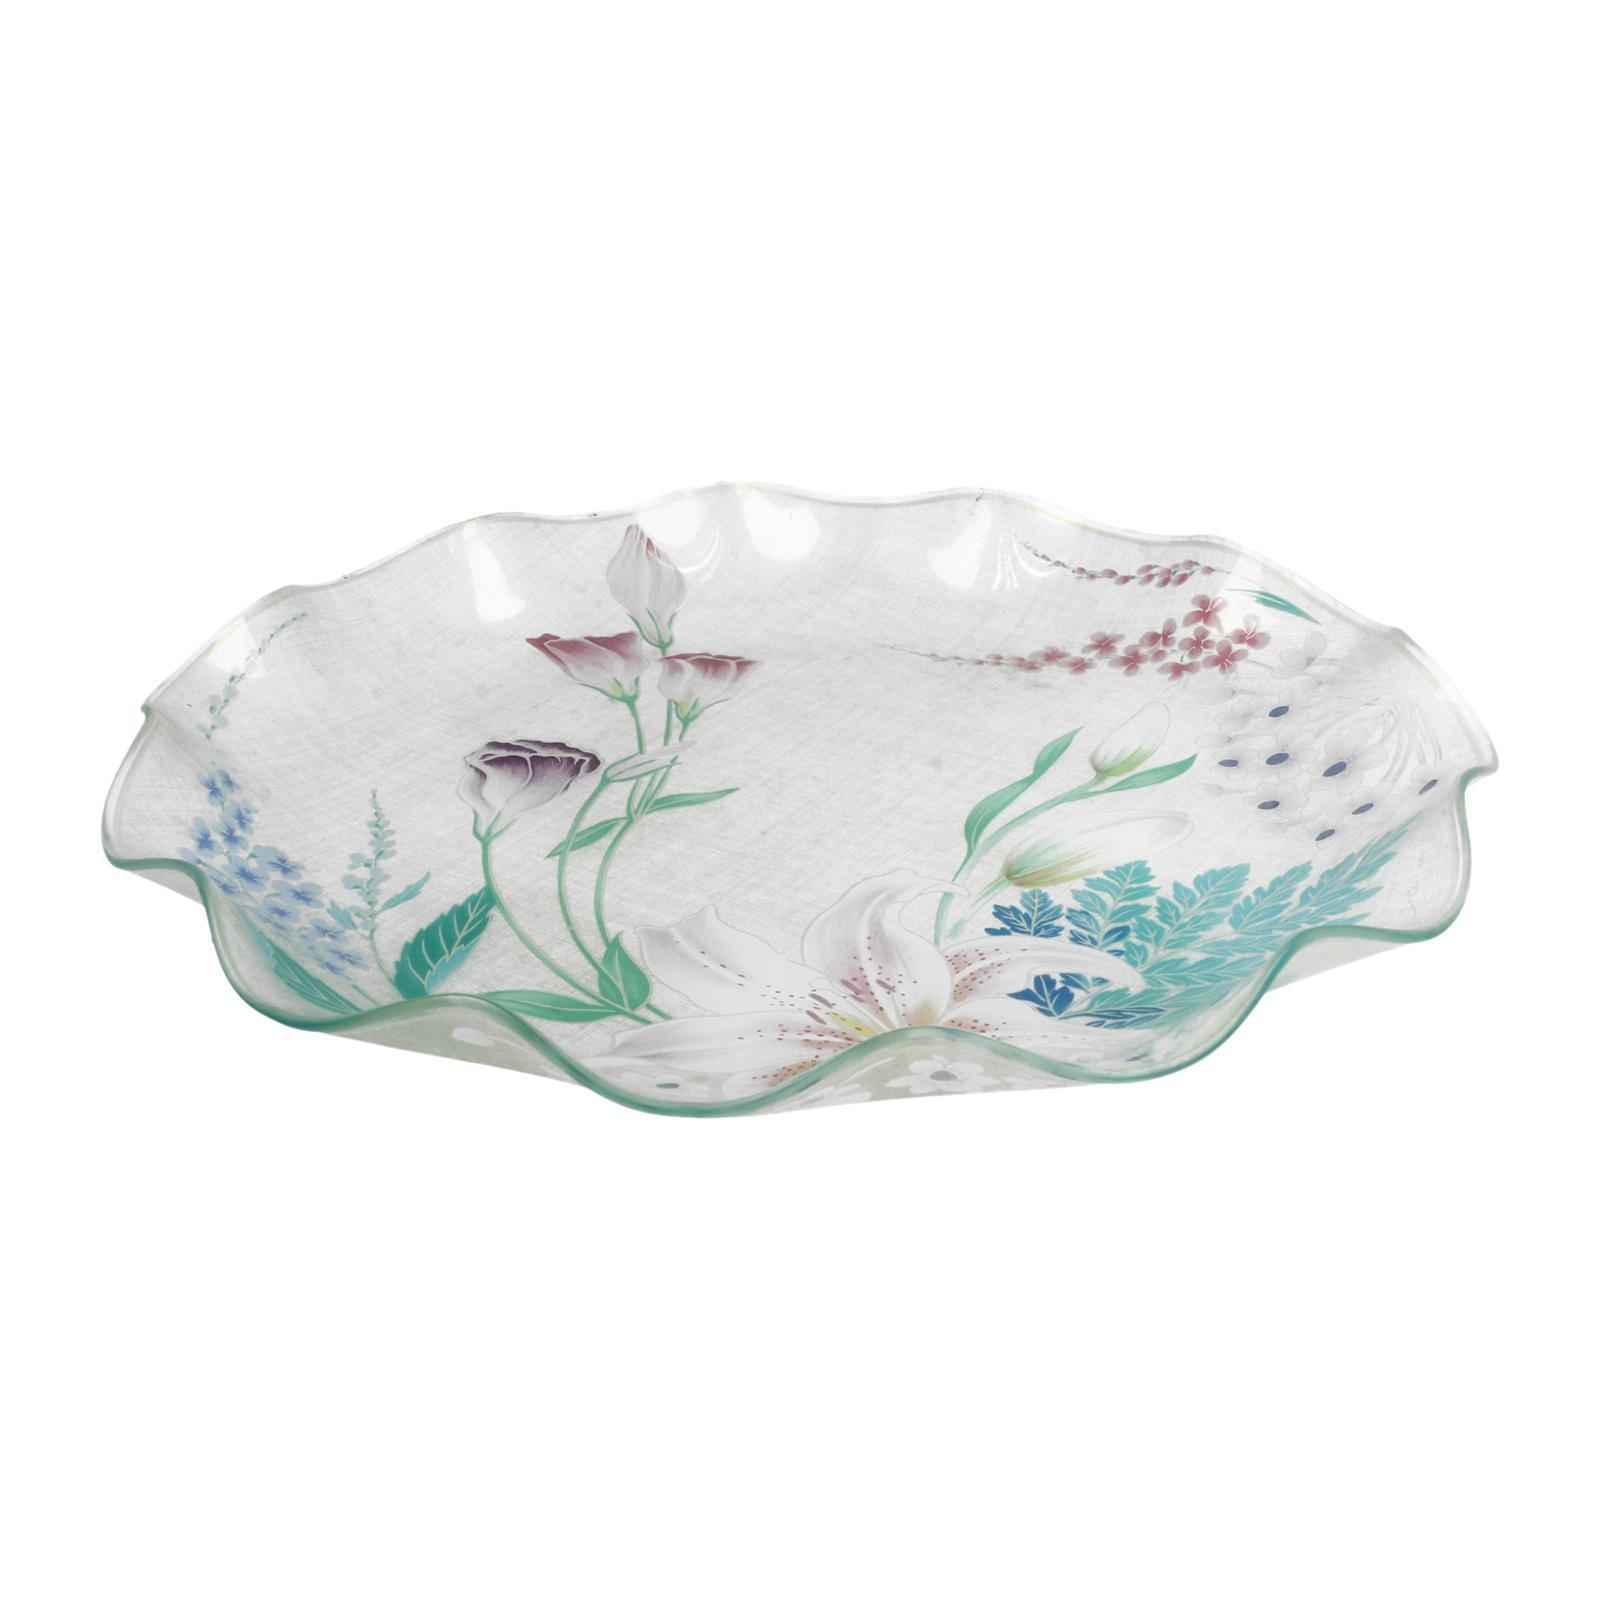 Soga Wavy Glass Plate 11 (Floral)